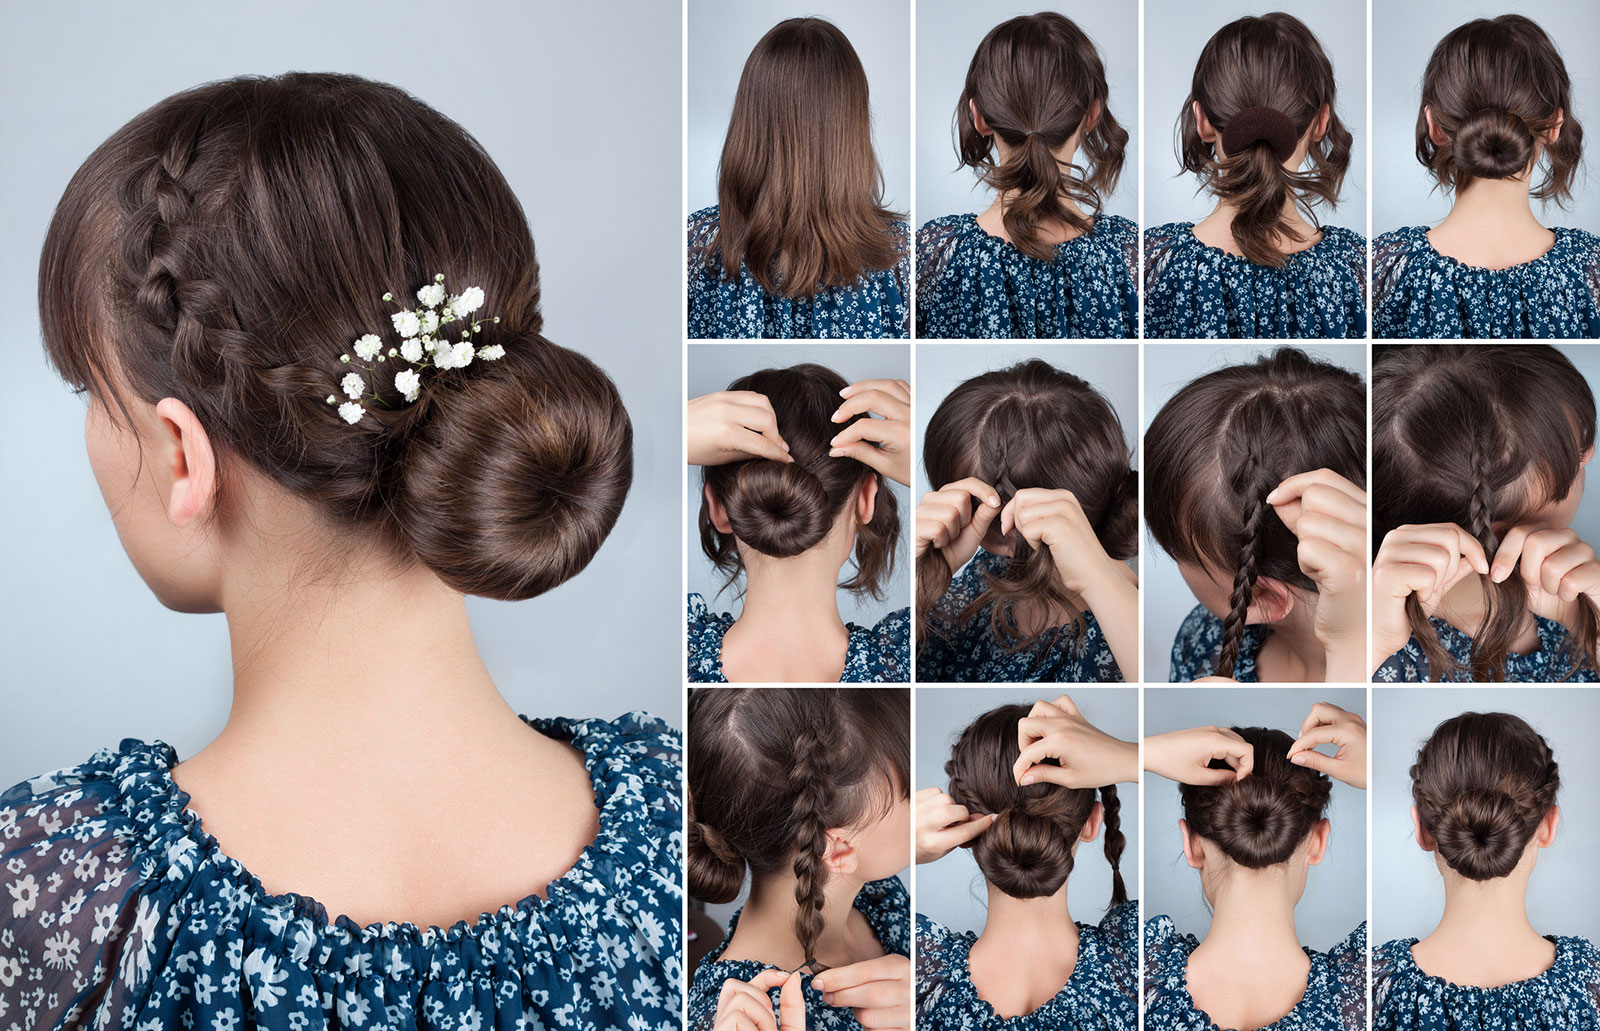 Classic bun with side braid easy hair updo